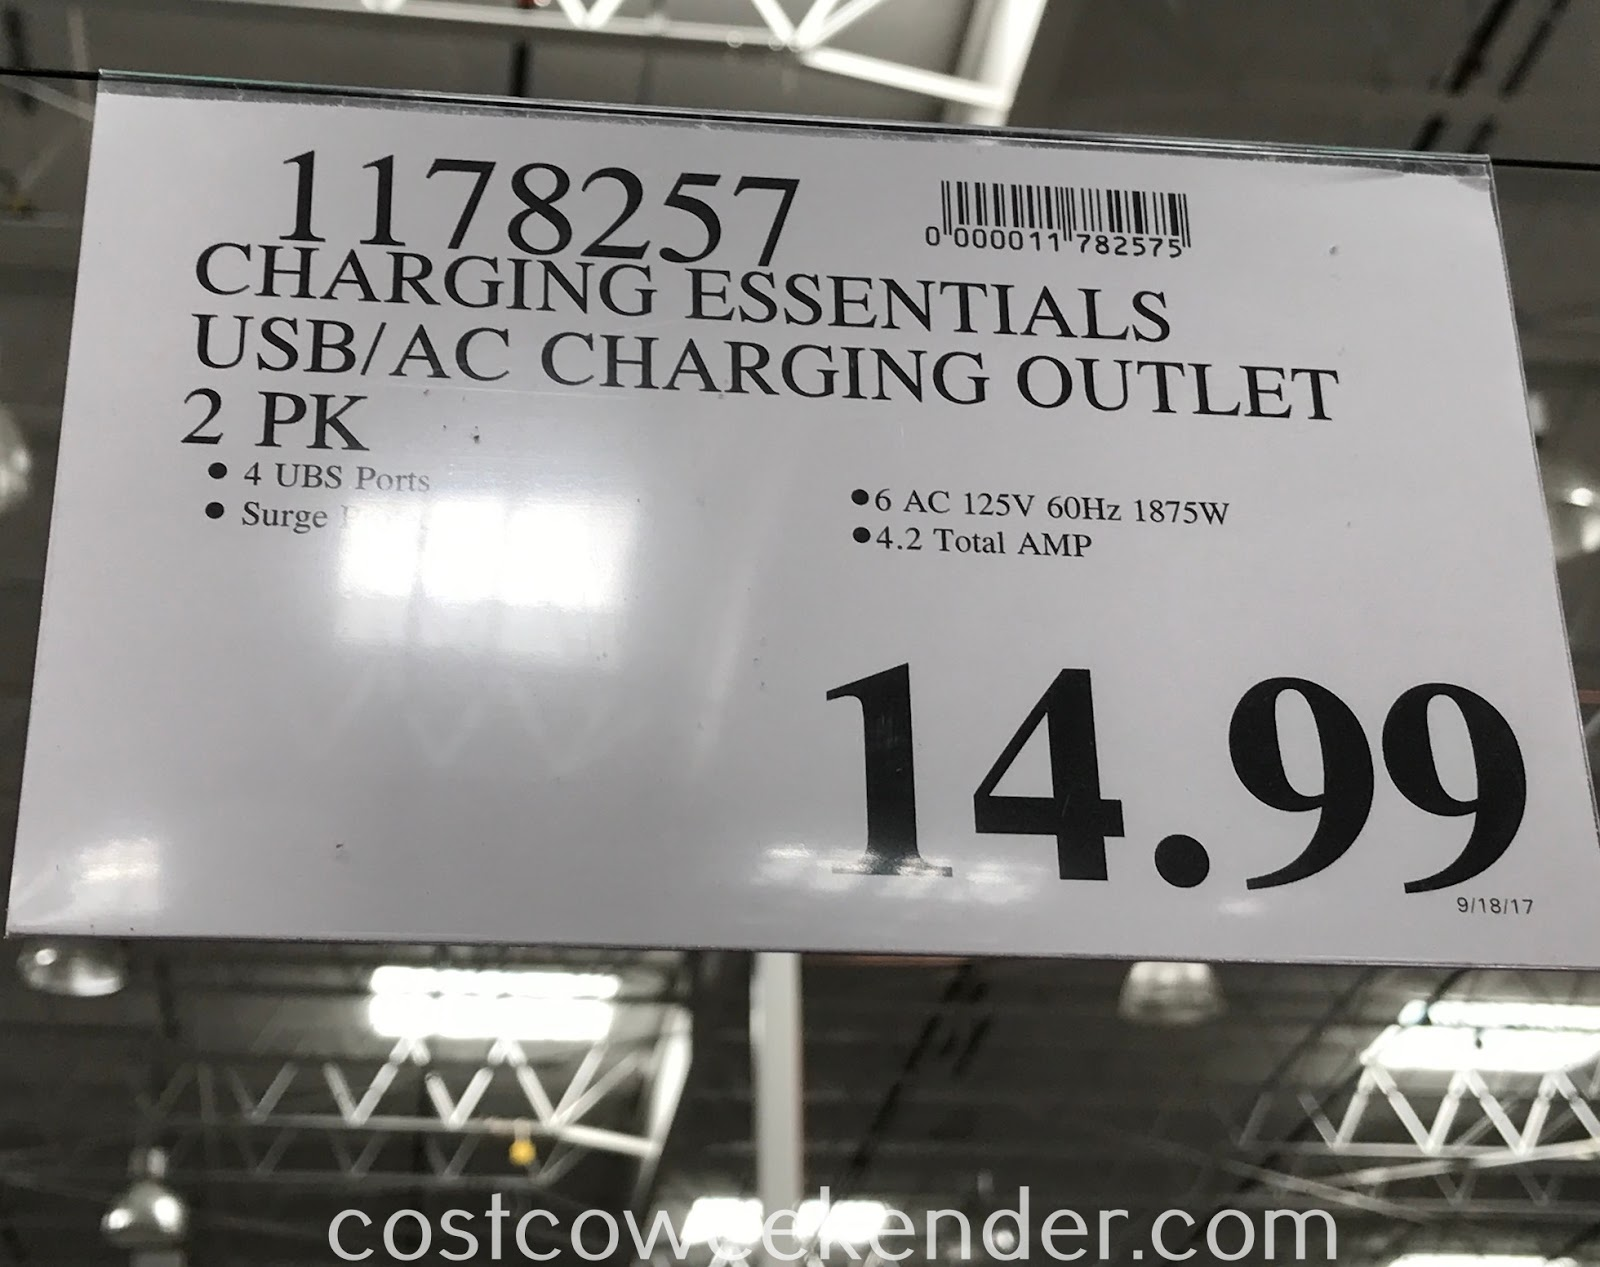 Deal for a 2 pack of Charging Essentials USB AC Charging Outlets at Costco